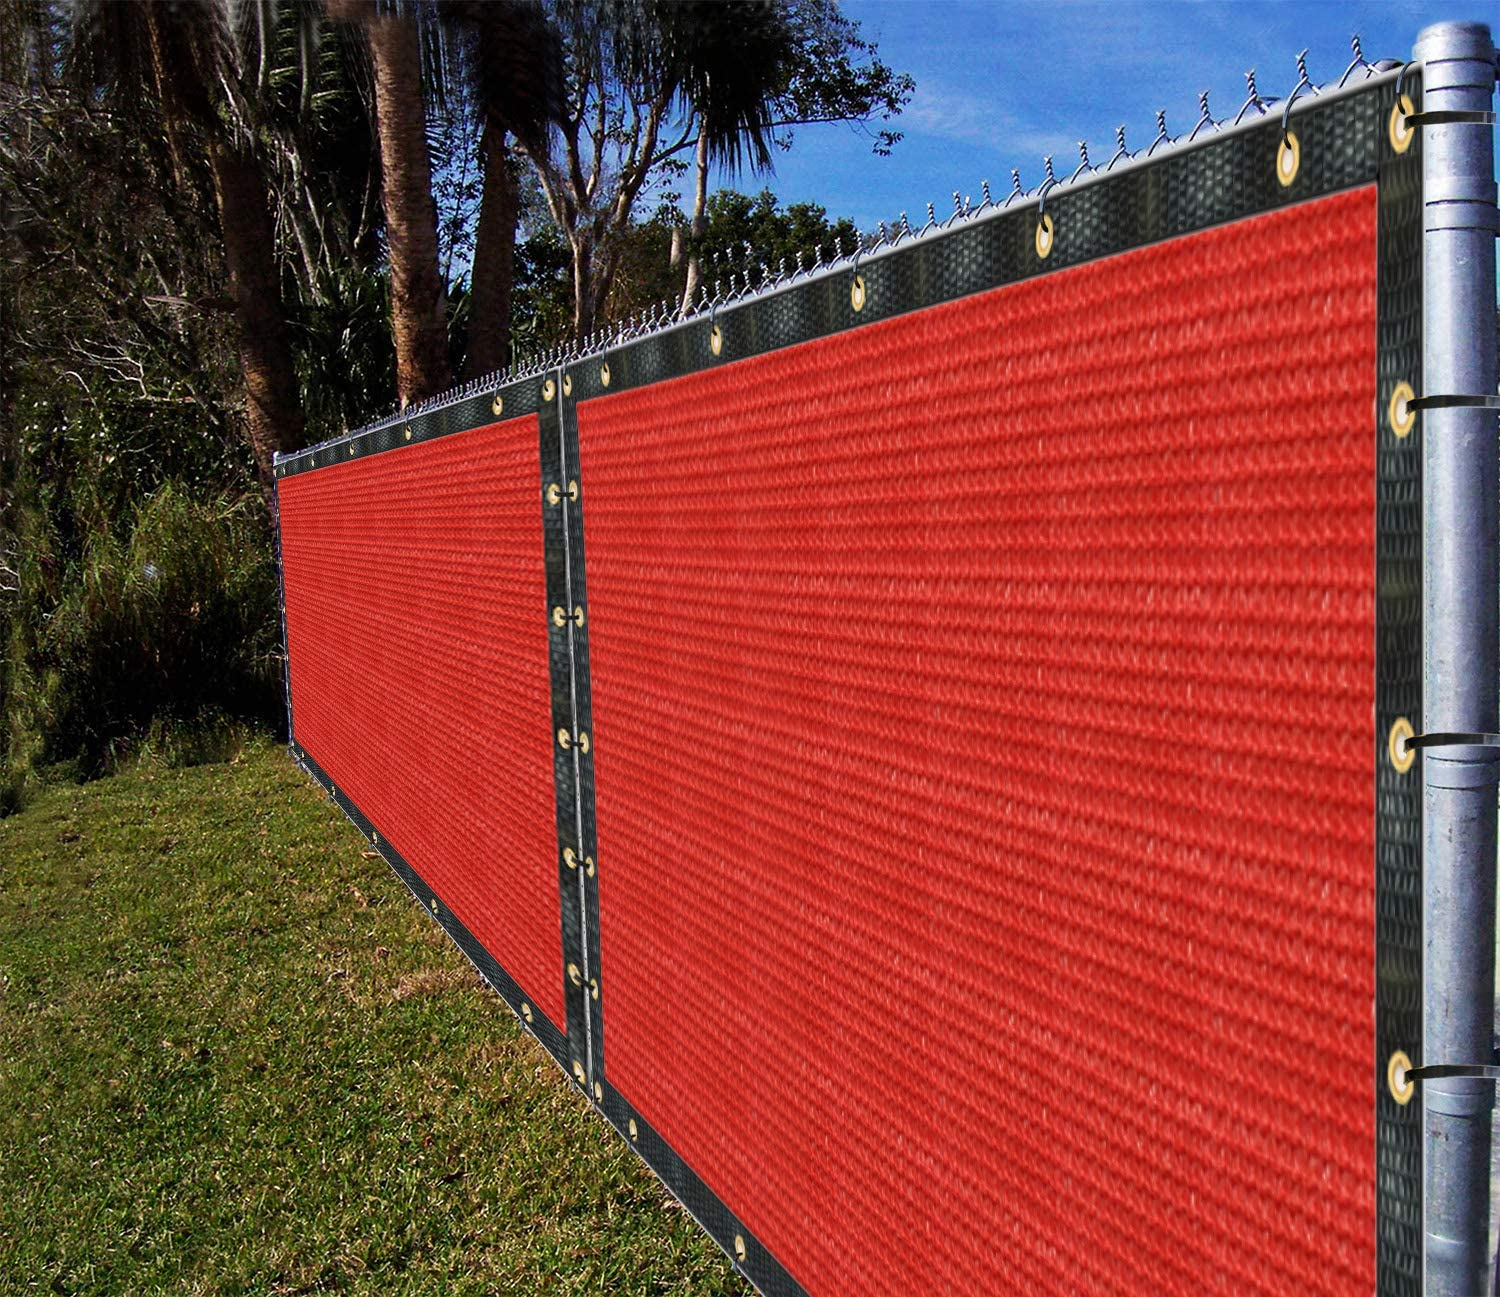 Ifenceview 6'x1' to 6'x50' Red Shade Cloth Panels Fence Privacy Screen Fabric Mesh Net for Construction Site Yard Gate Driveway Garden Railing Pool Balcony Canopy Awning 160 GSM (6' x 55')